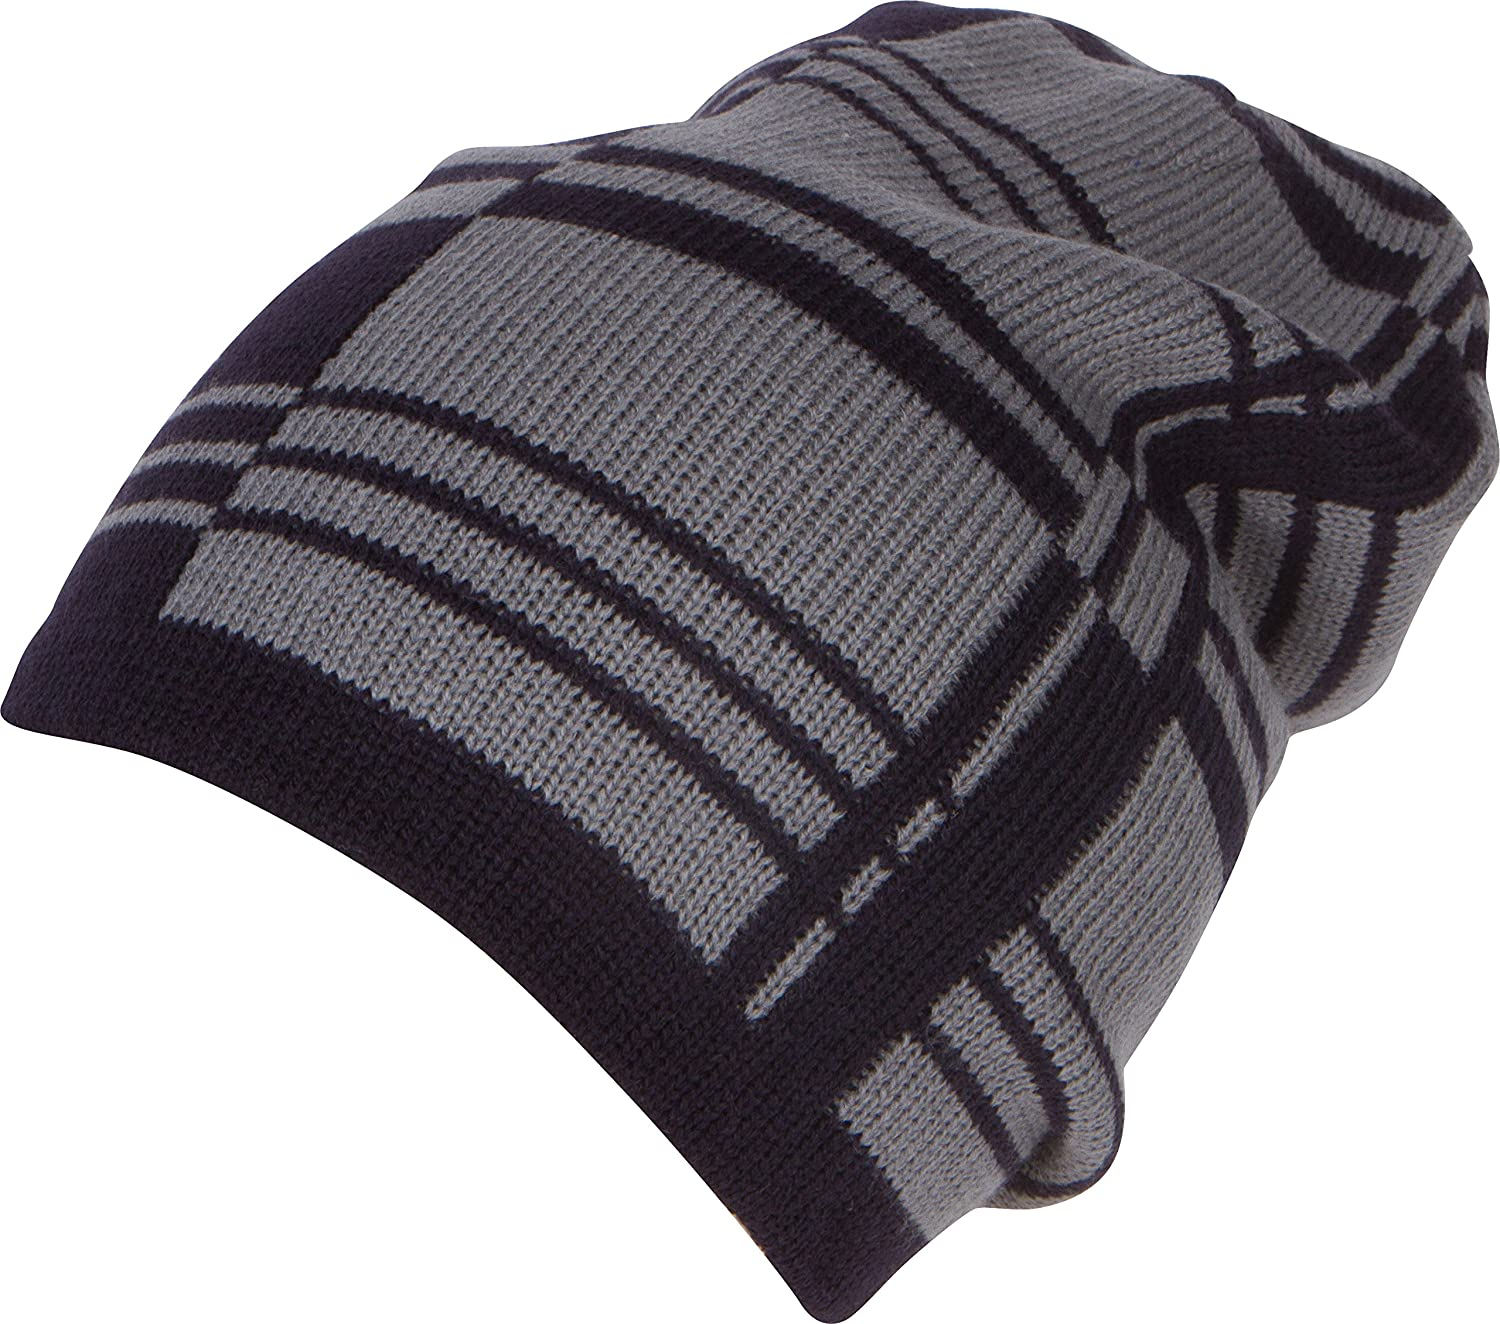 e9c23beced7 Sakkas SL171 - Remi Slouchy Beanie Knit Hat Warm Simple and Classic - 1766-black  - OS  Amazon.co.uk  Clothing